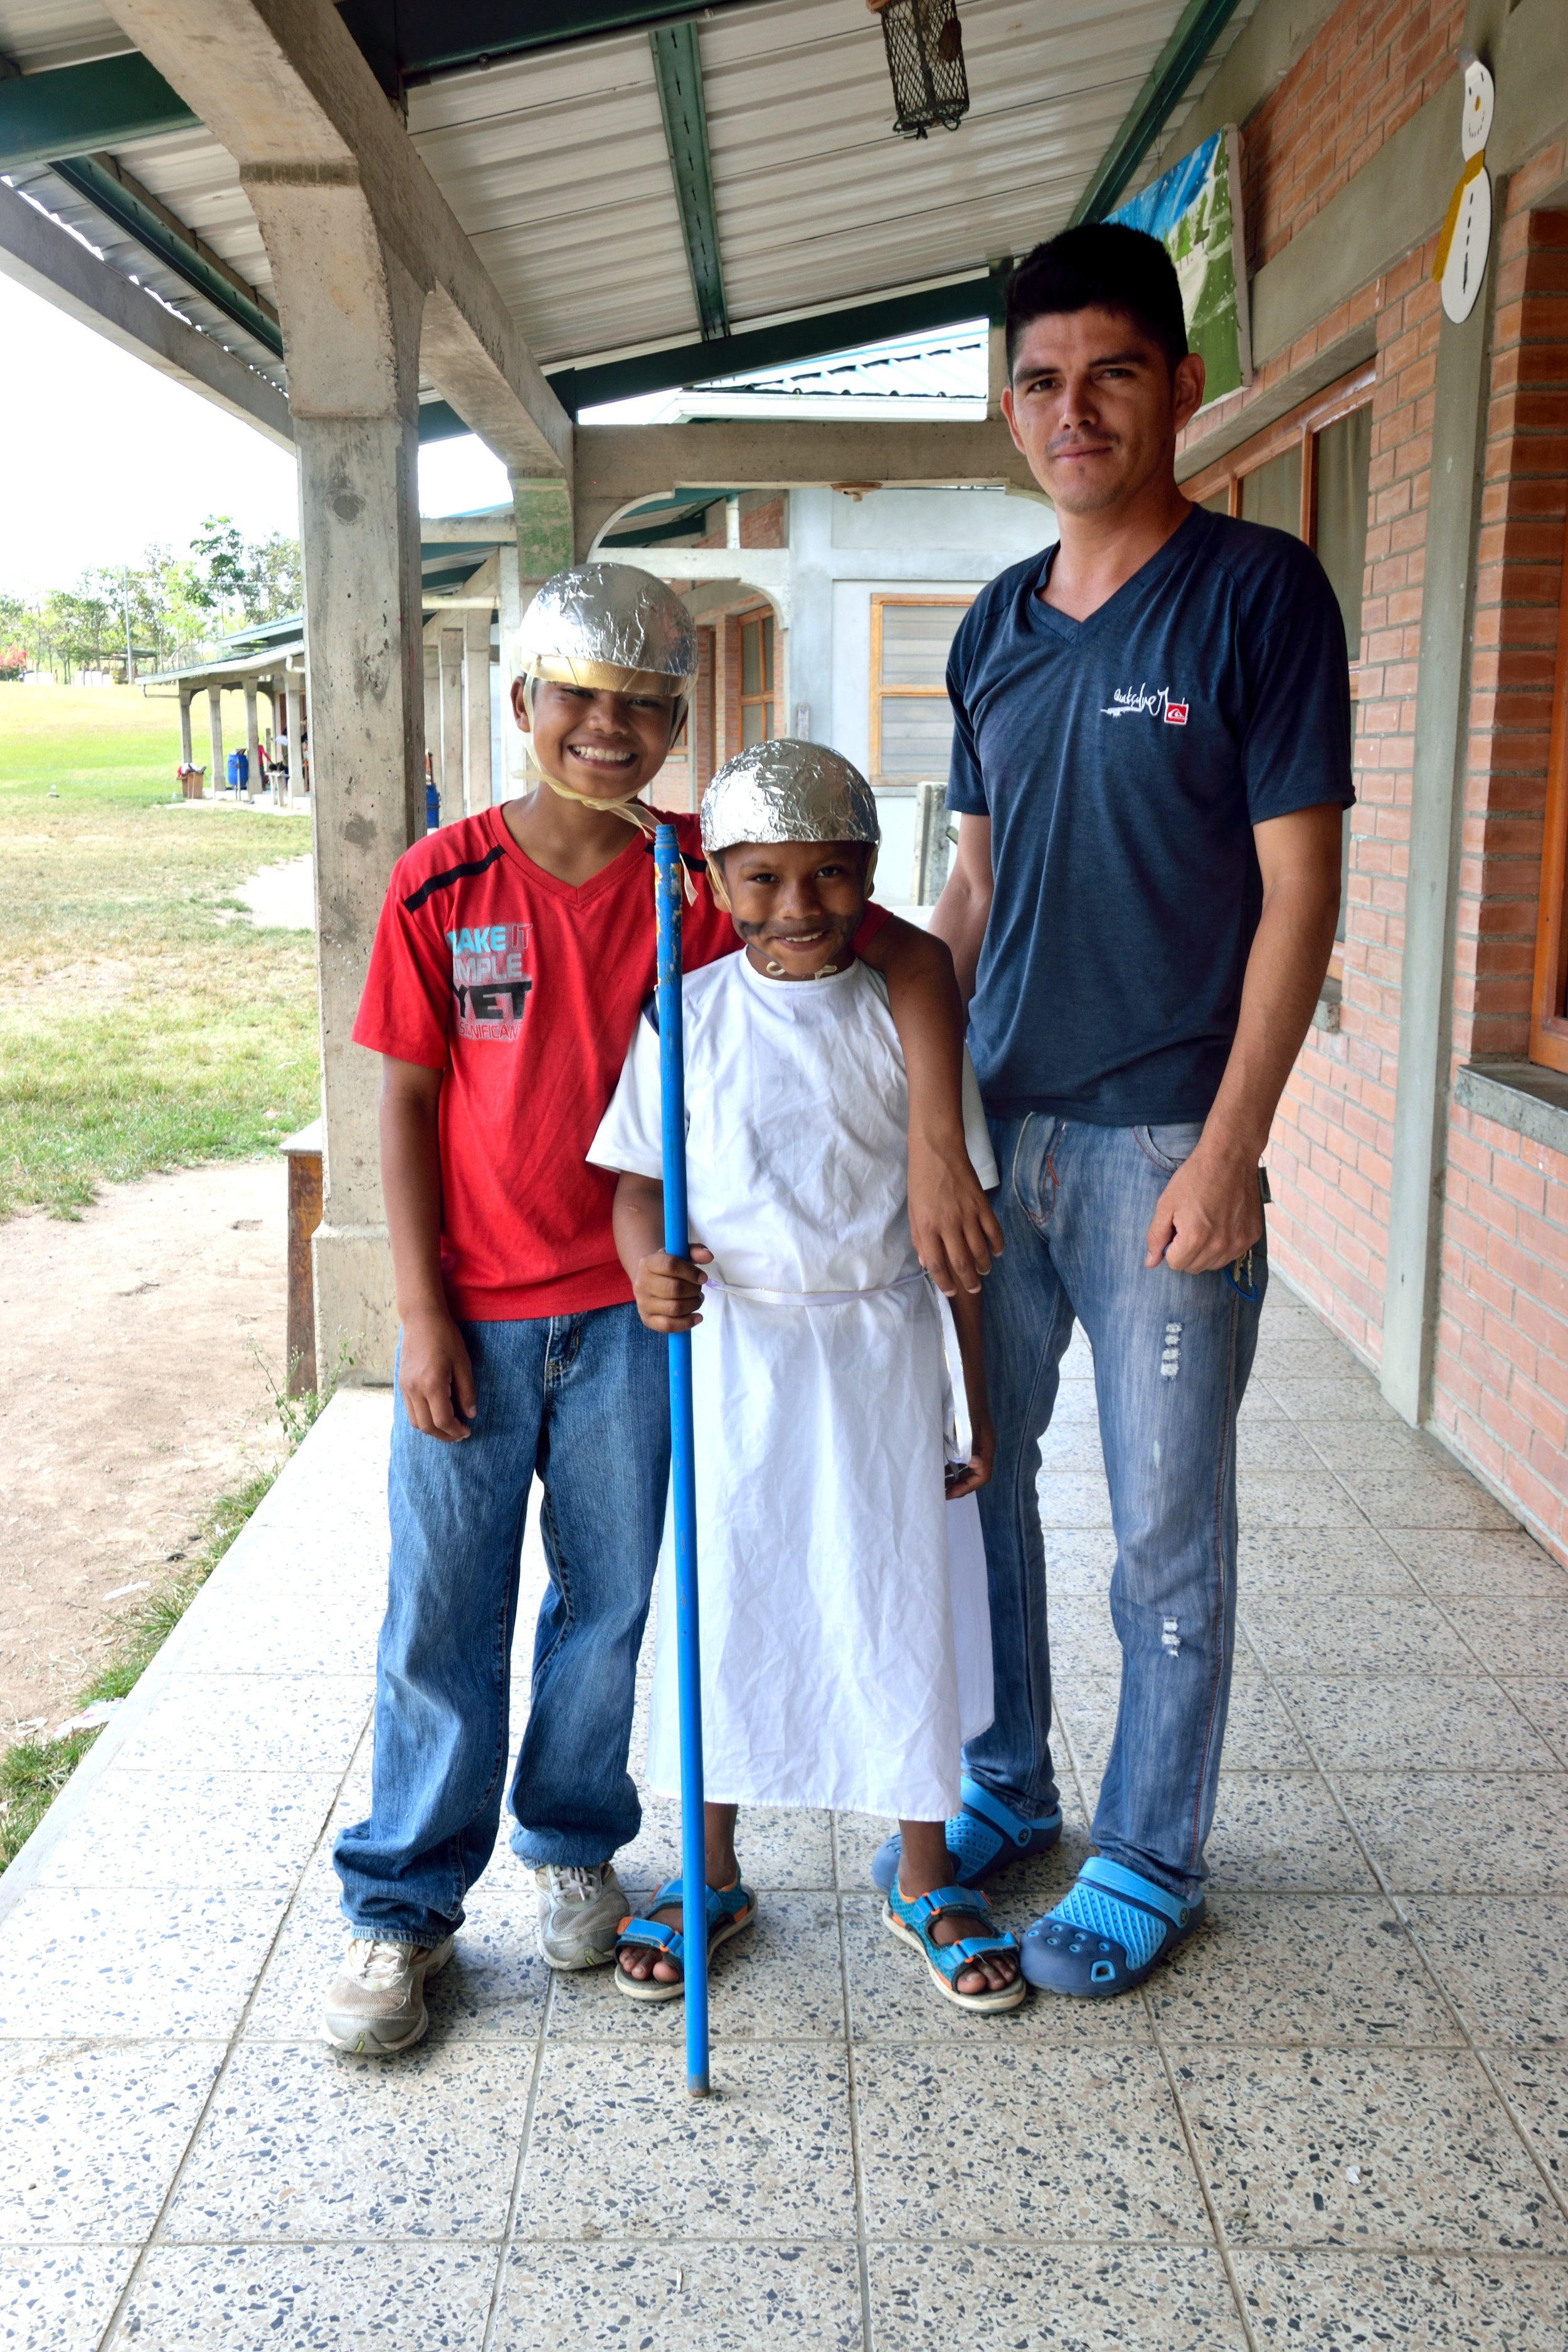 Emanuel (on the left) with his younger brother, Wilbur*, and Padrino Rigo, one of the caregivers in their dorm, before Living Stations of the Cross during Holy Week 2017.  In addition to his intelligence and inventive mind, one of Emanuel's most endearing qualities is the close, protective, and loyal relationship he shares with his brother.